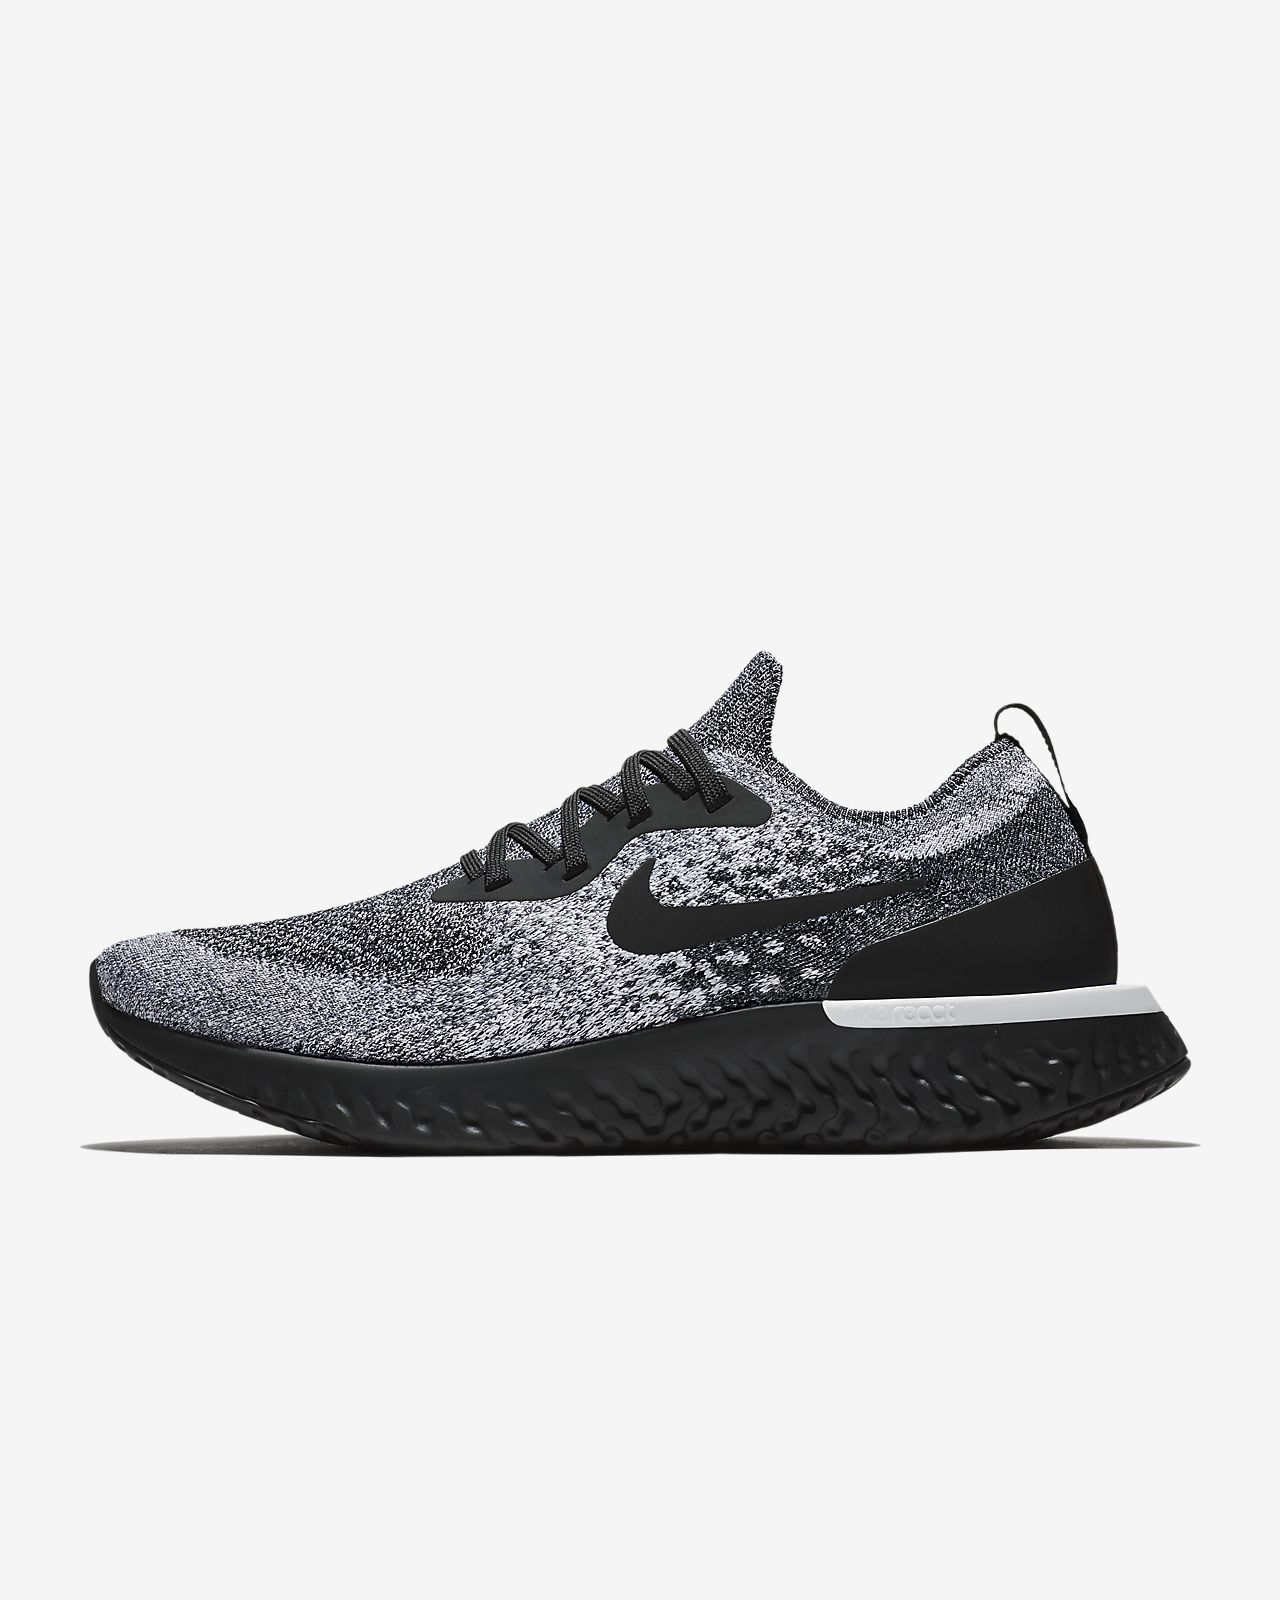 new product af300 ff4a2 Men s Running Shoe. Nike Epic React Flyknit